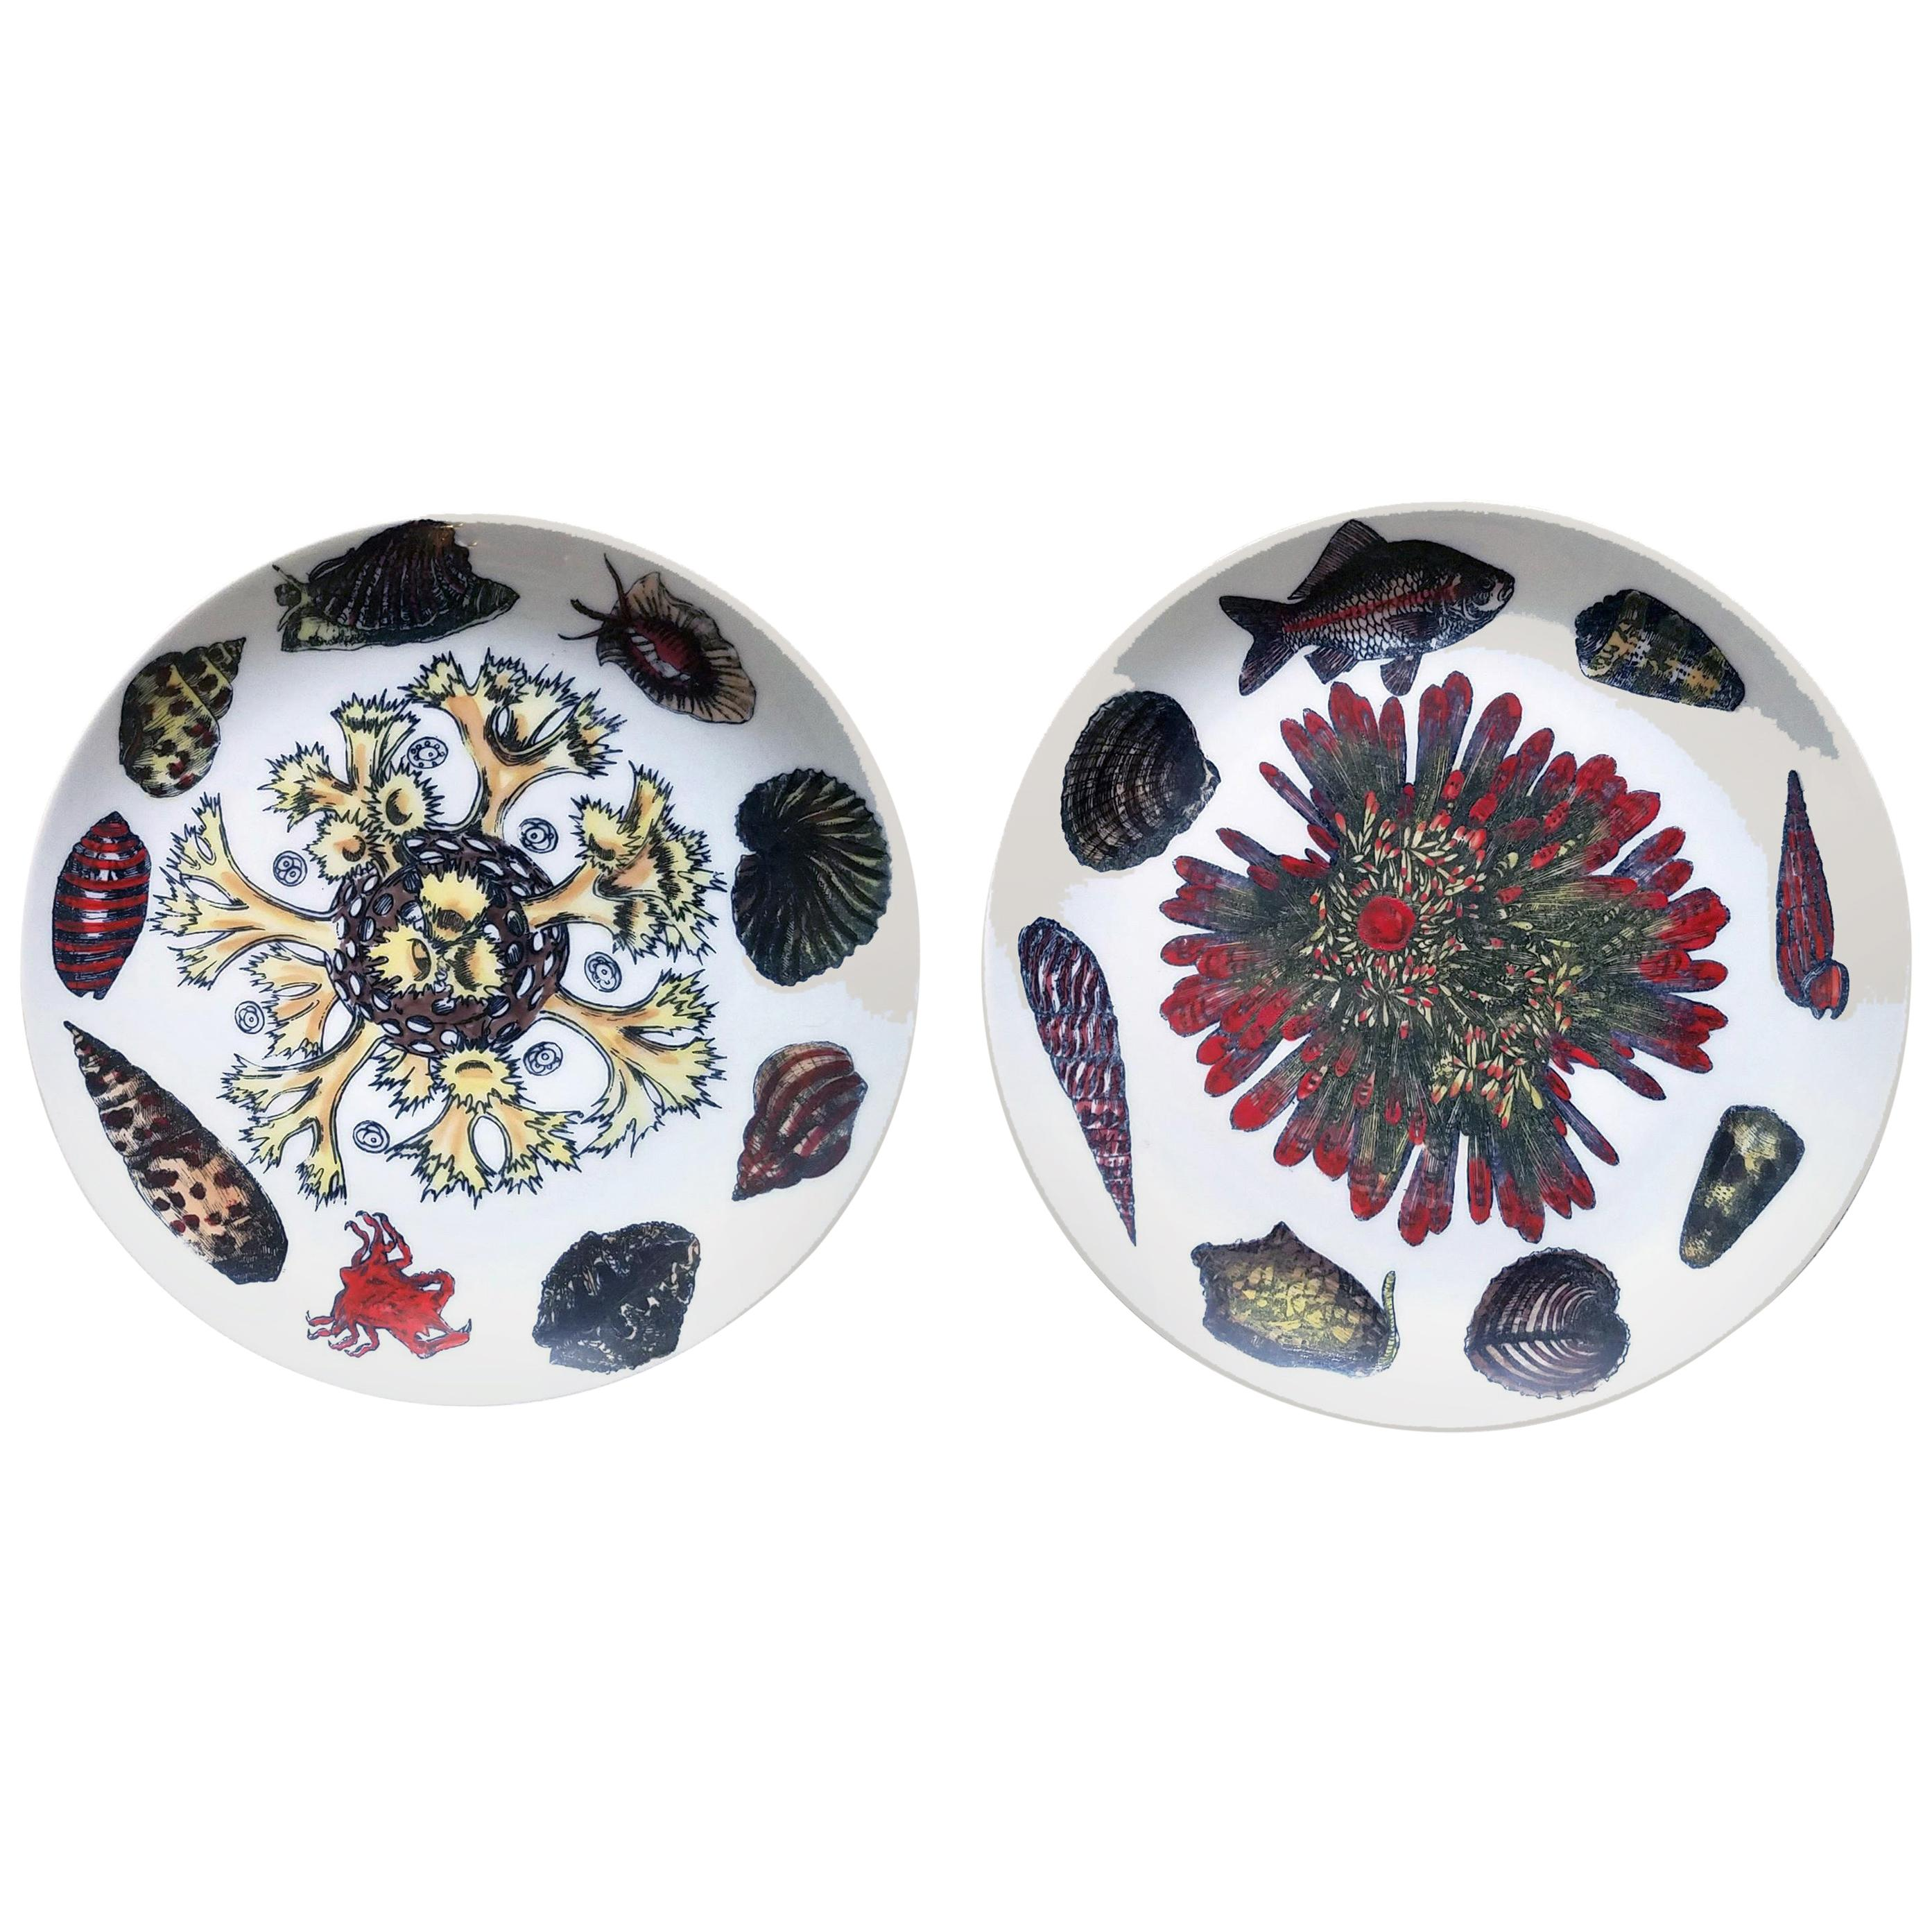 Vintage Piero Fornasetti Porcelain Plates, Pair Decorated with Sea Anemones